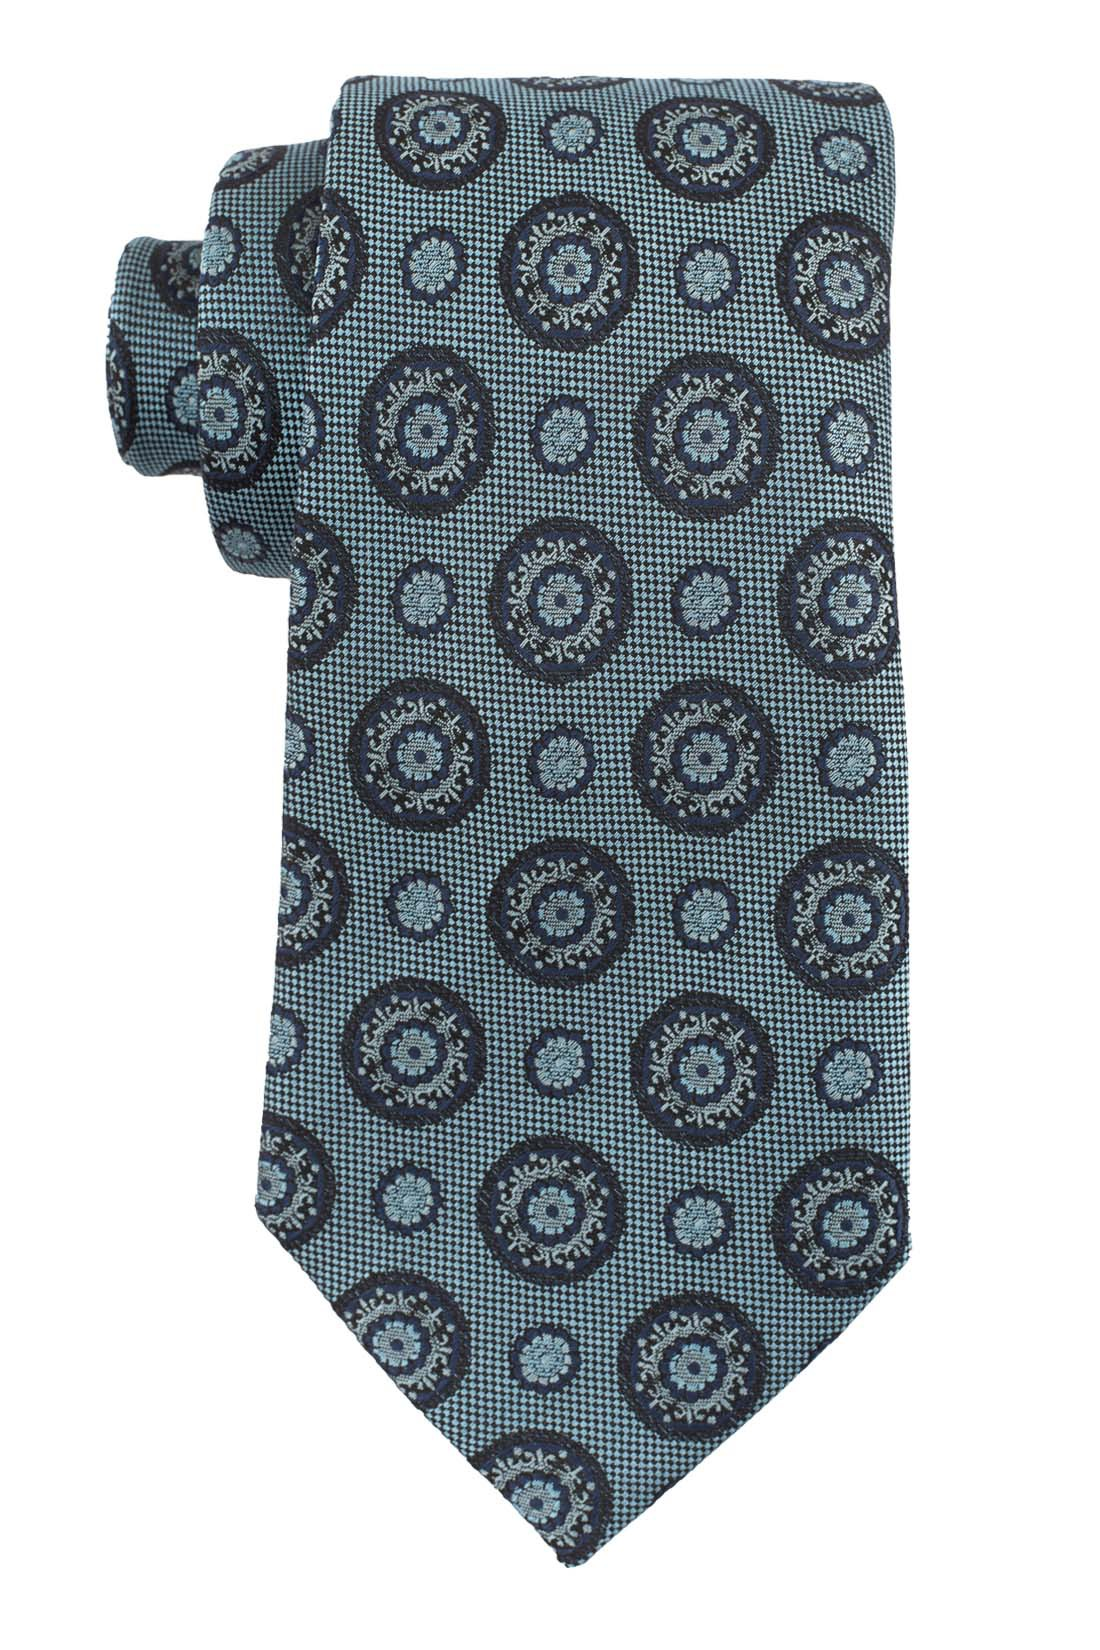 Ringside Polka Teal and Black 100% Silk Necktie